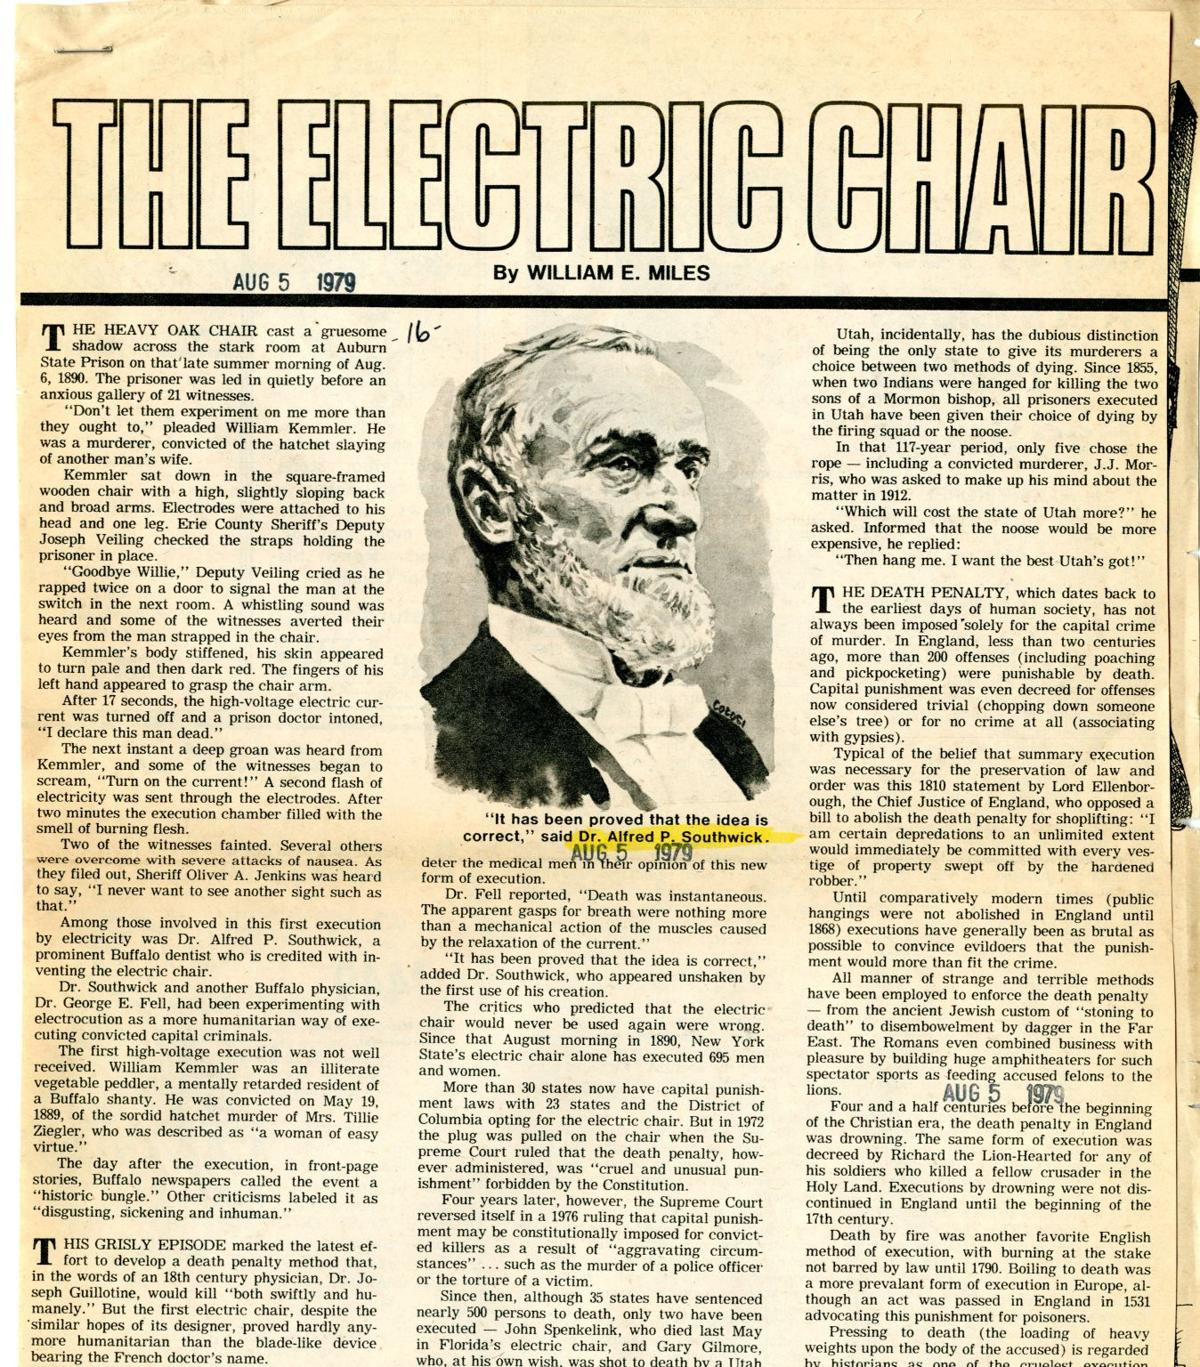 electric chair048